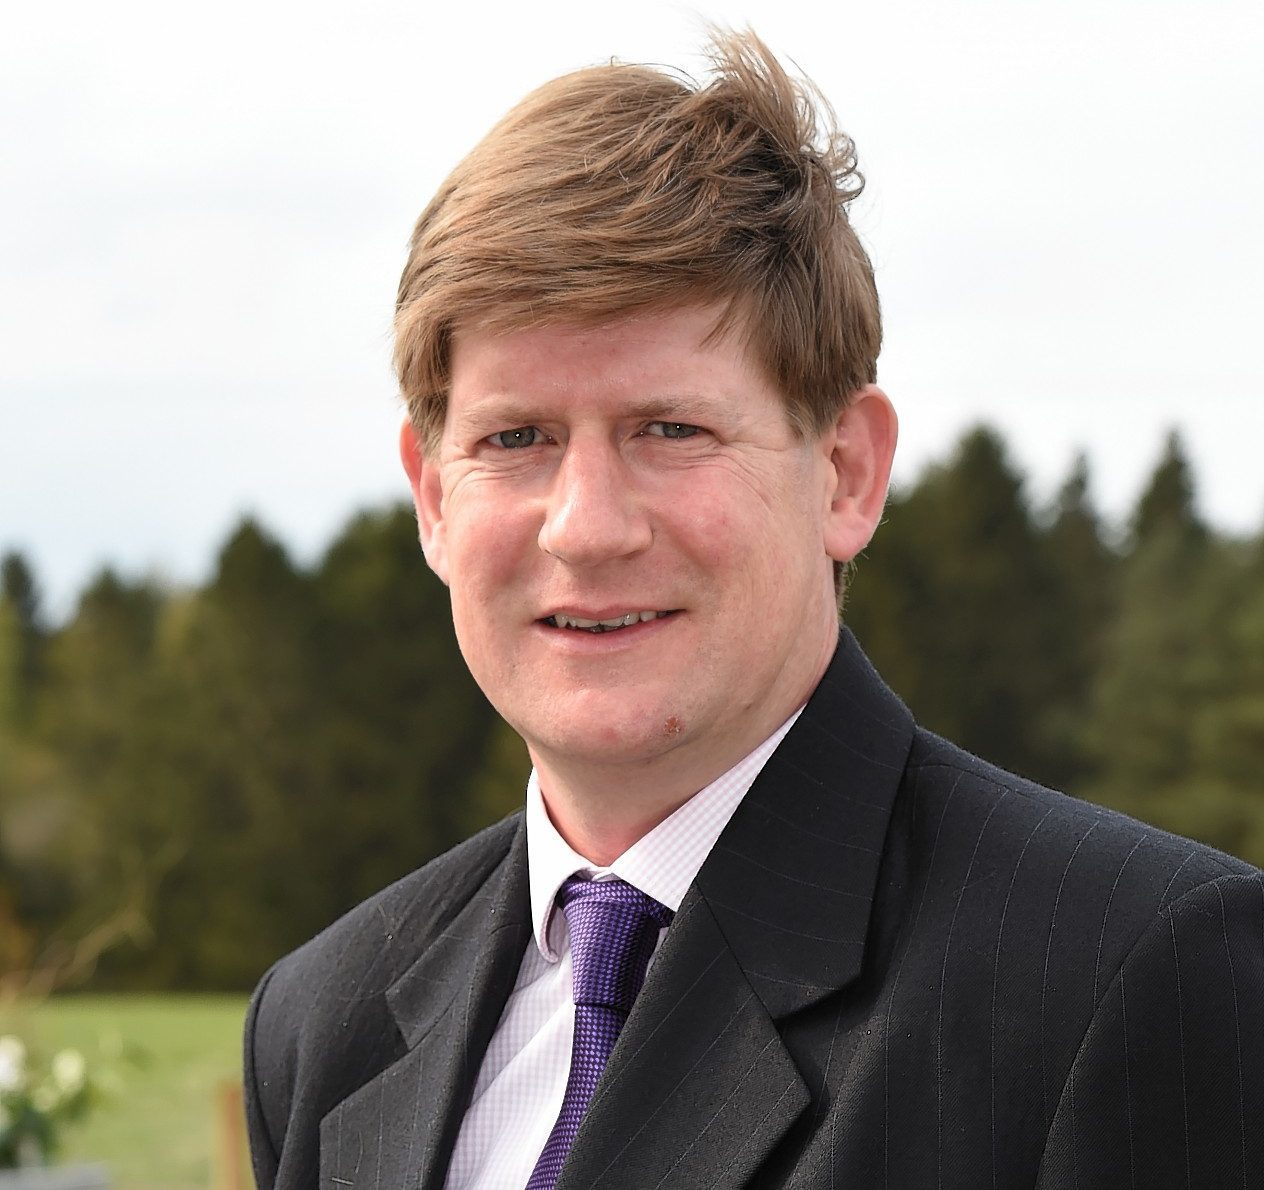 """Scottish Conservative MSP for Aberdeenshire West, Alexander Burnett said the cuts higlight the """"devastating impact"""" of the oil crash on the region"""